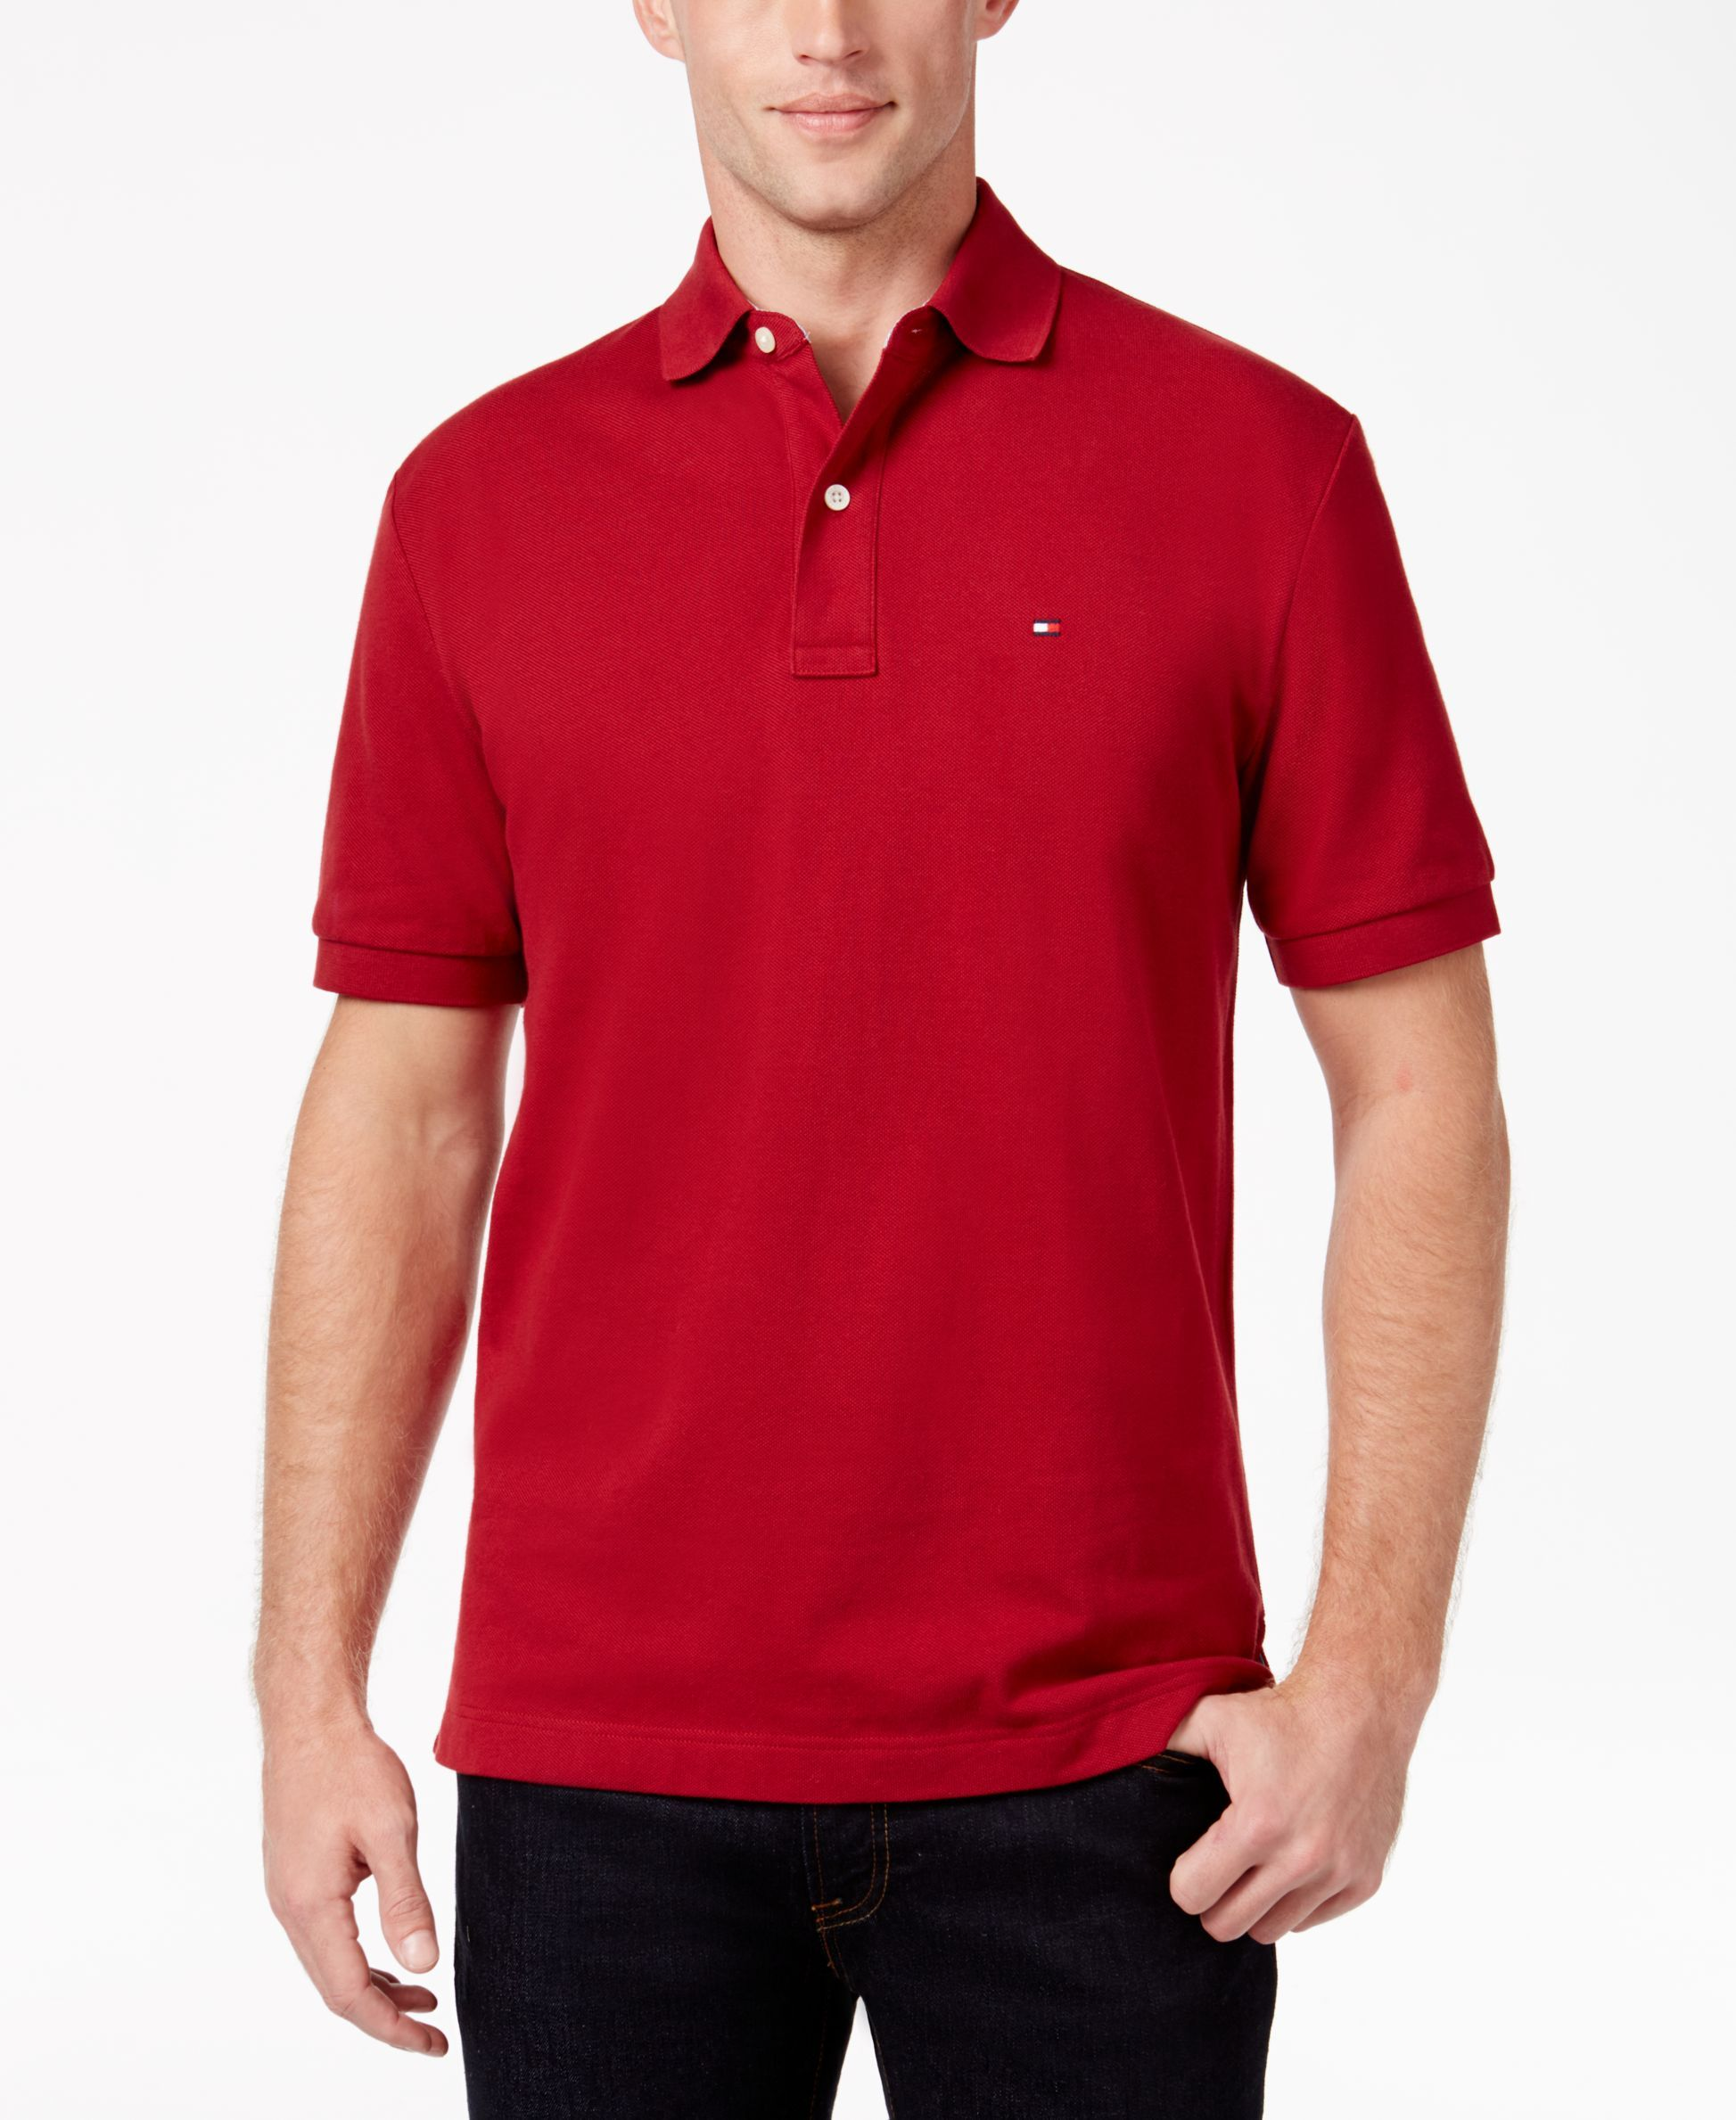 4aaea7d634e81 Tommy Hilfiger Men s Classic-Fit Ivy Polo